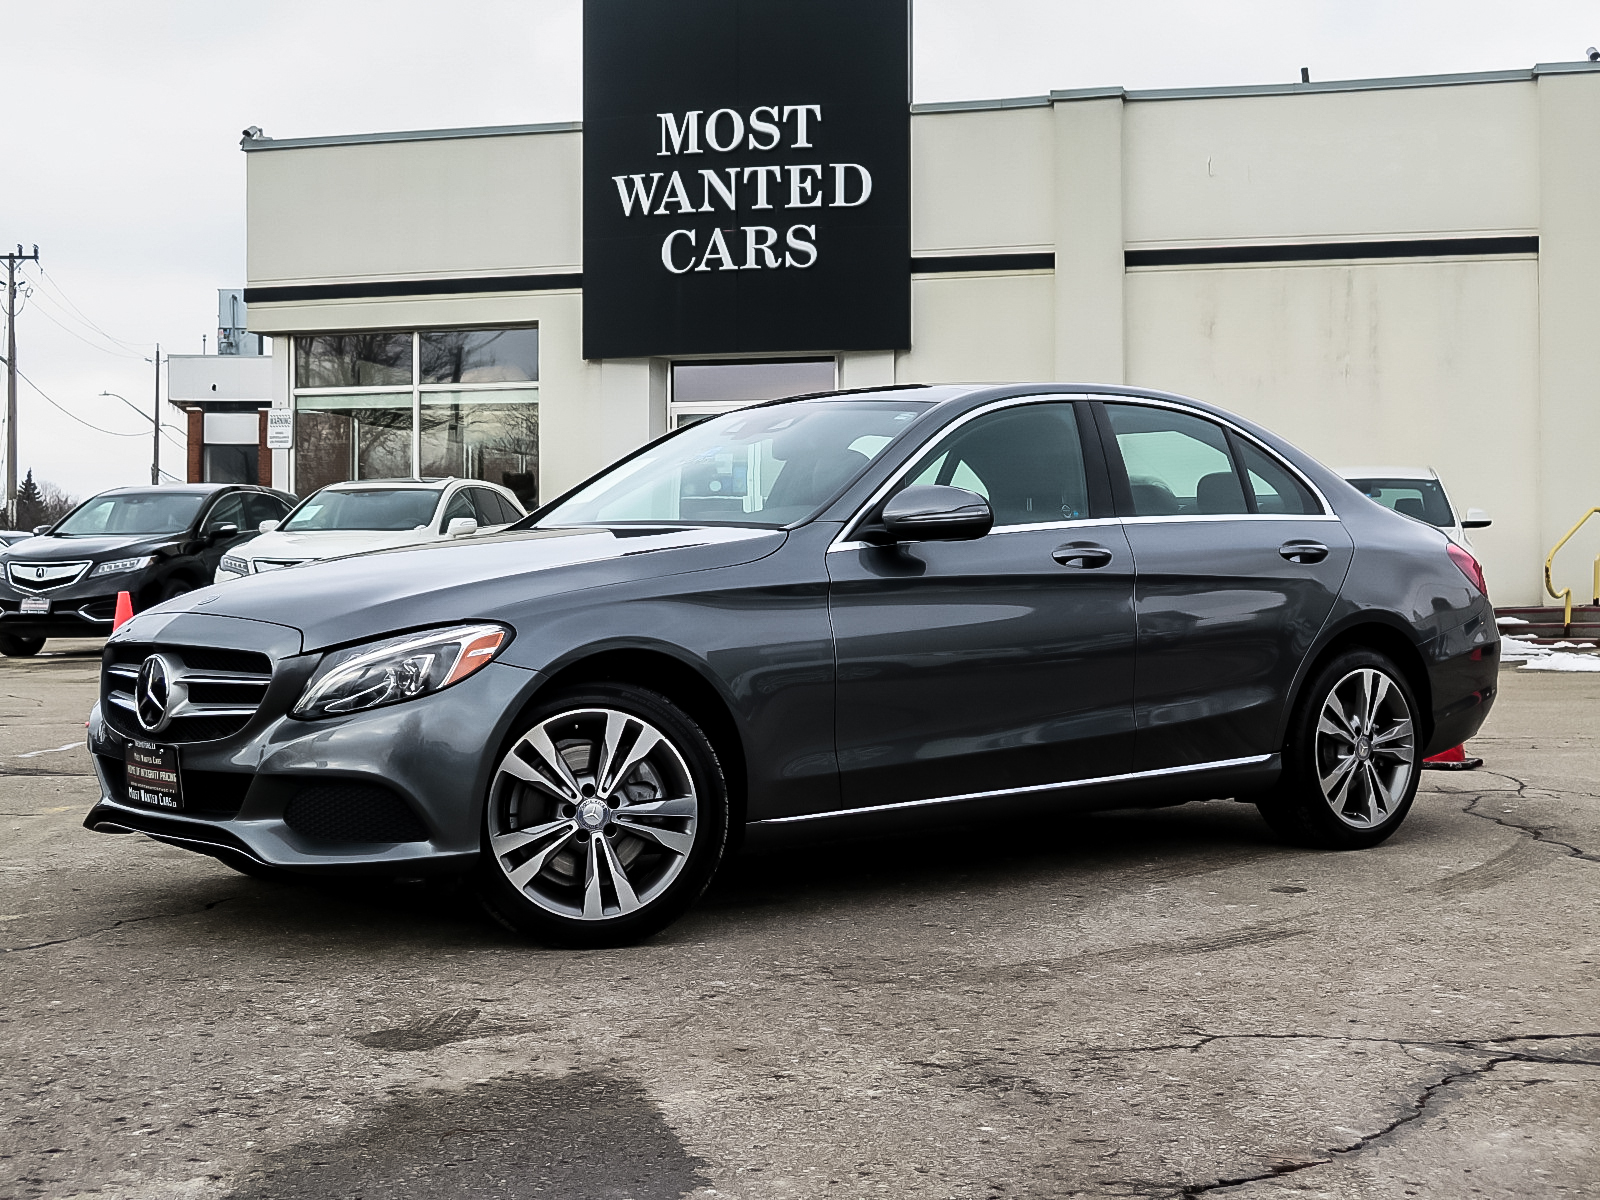 used 2017 Mercedes-Benz C300 car, priced at $29,492